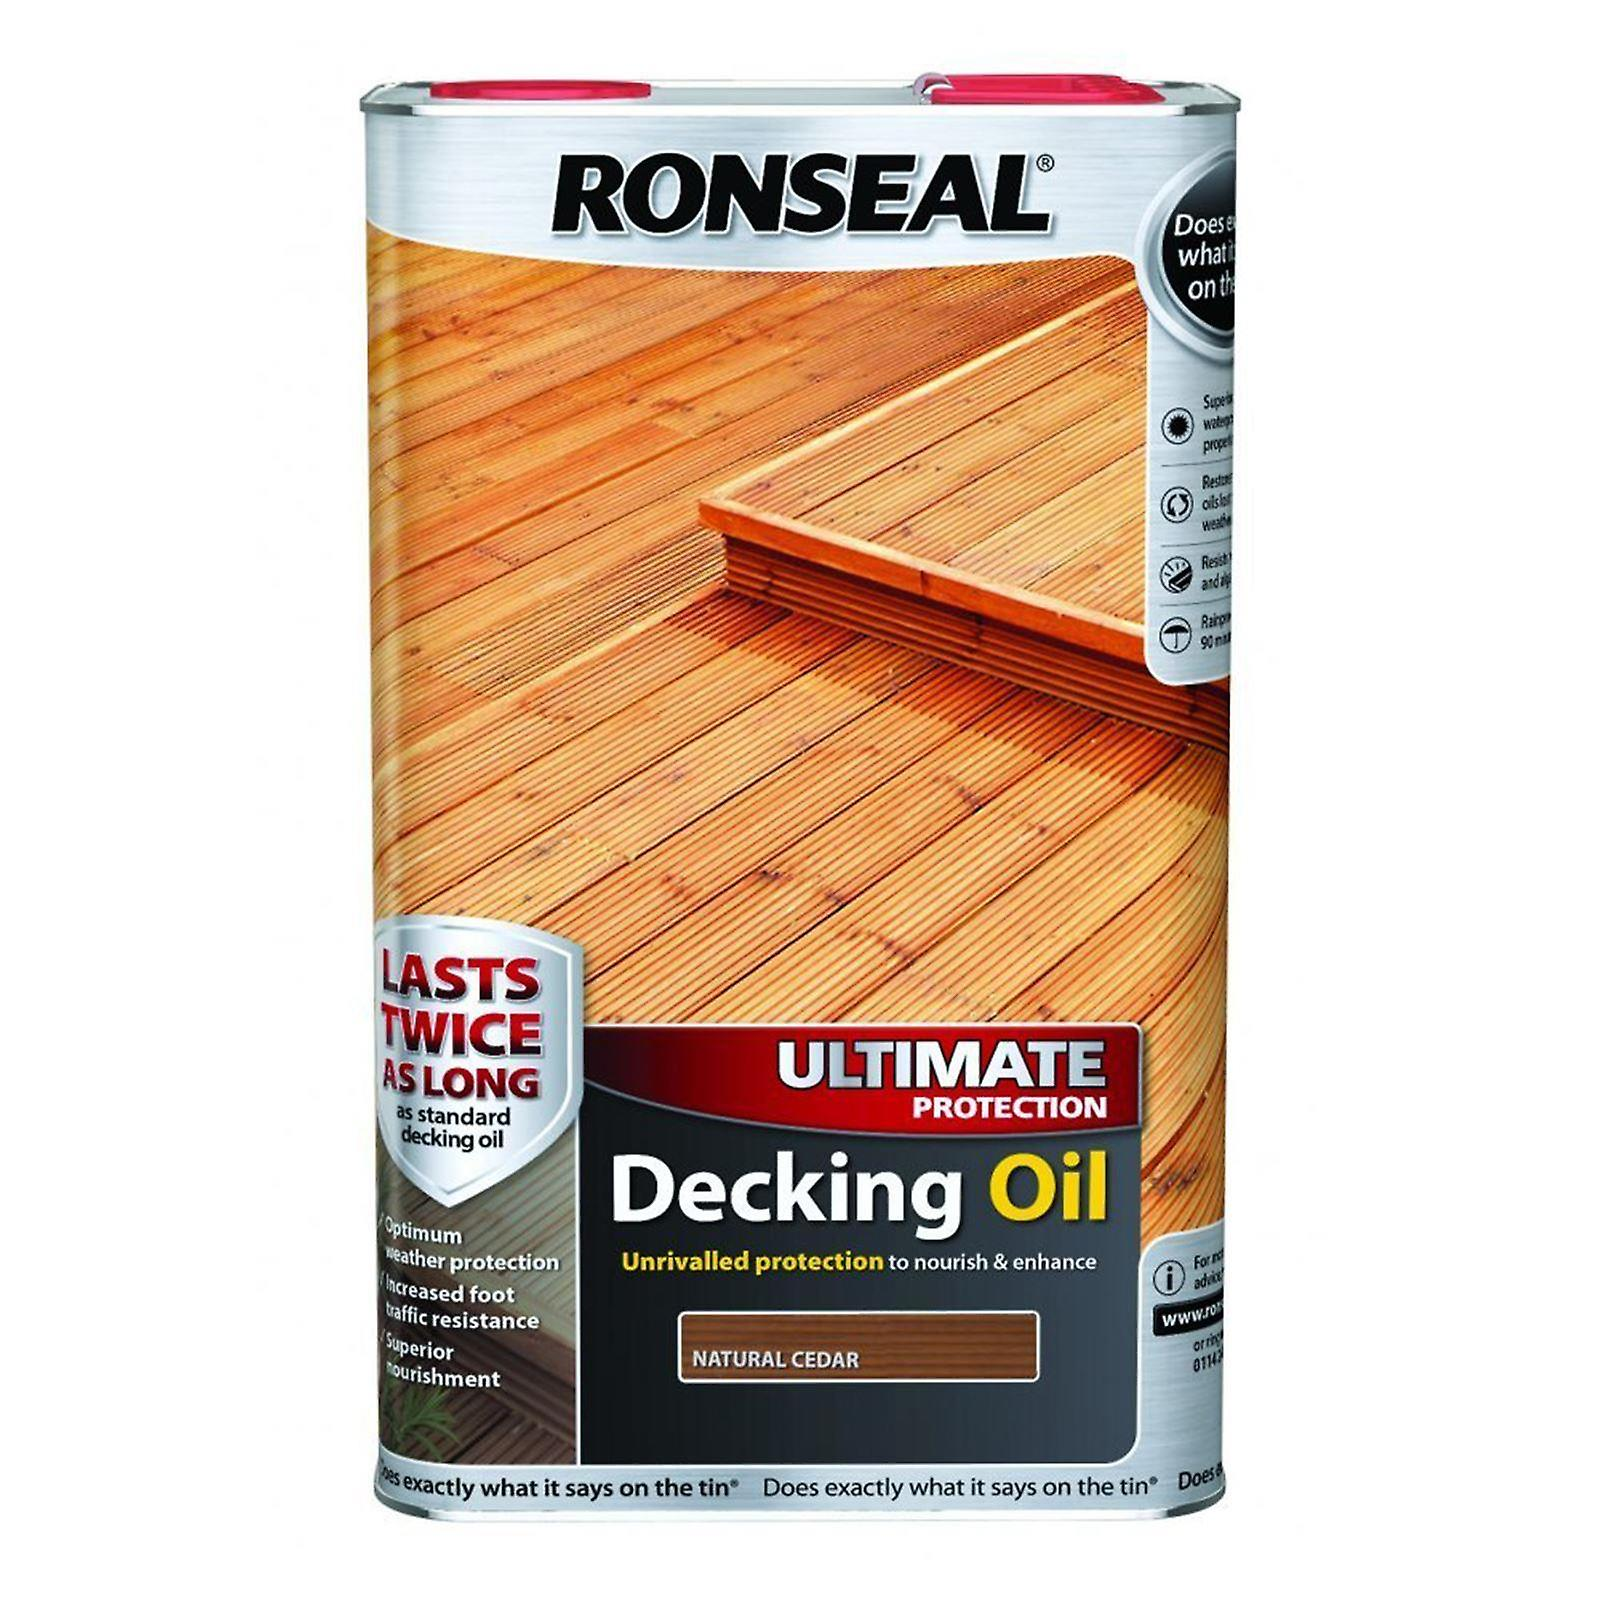 Ronseal Ultimate Protection Decking Oil 5 Litre - Natural Cedar